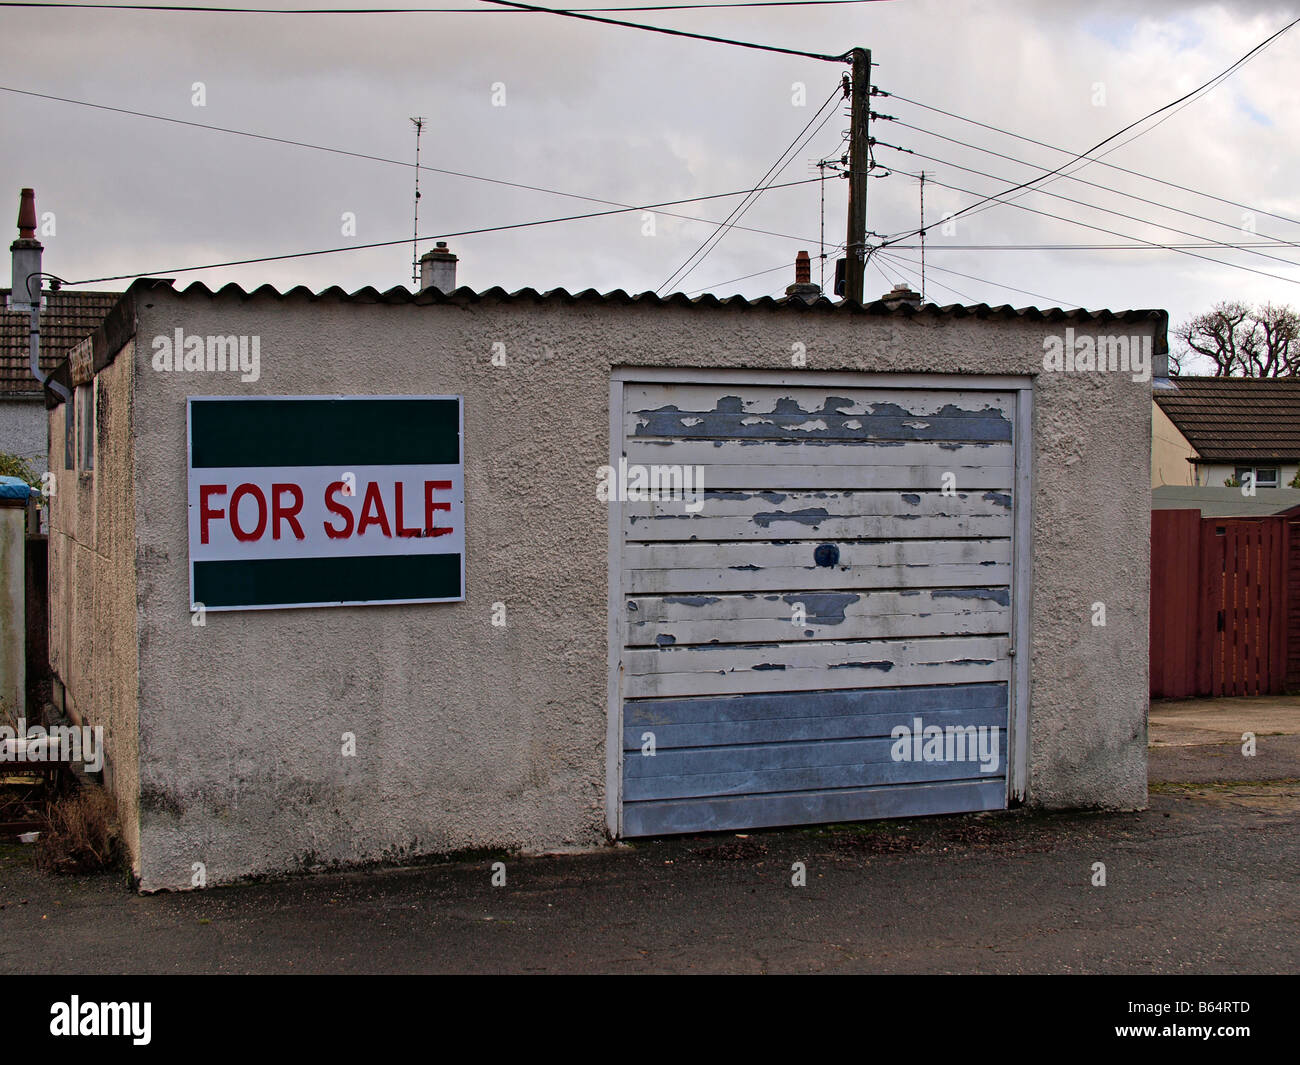 an old lock up garage for sale in hull,yorkshire,uk - Stock Image